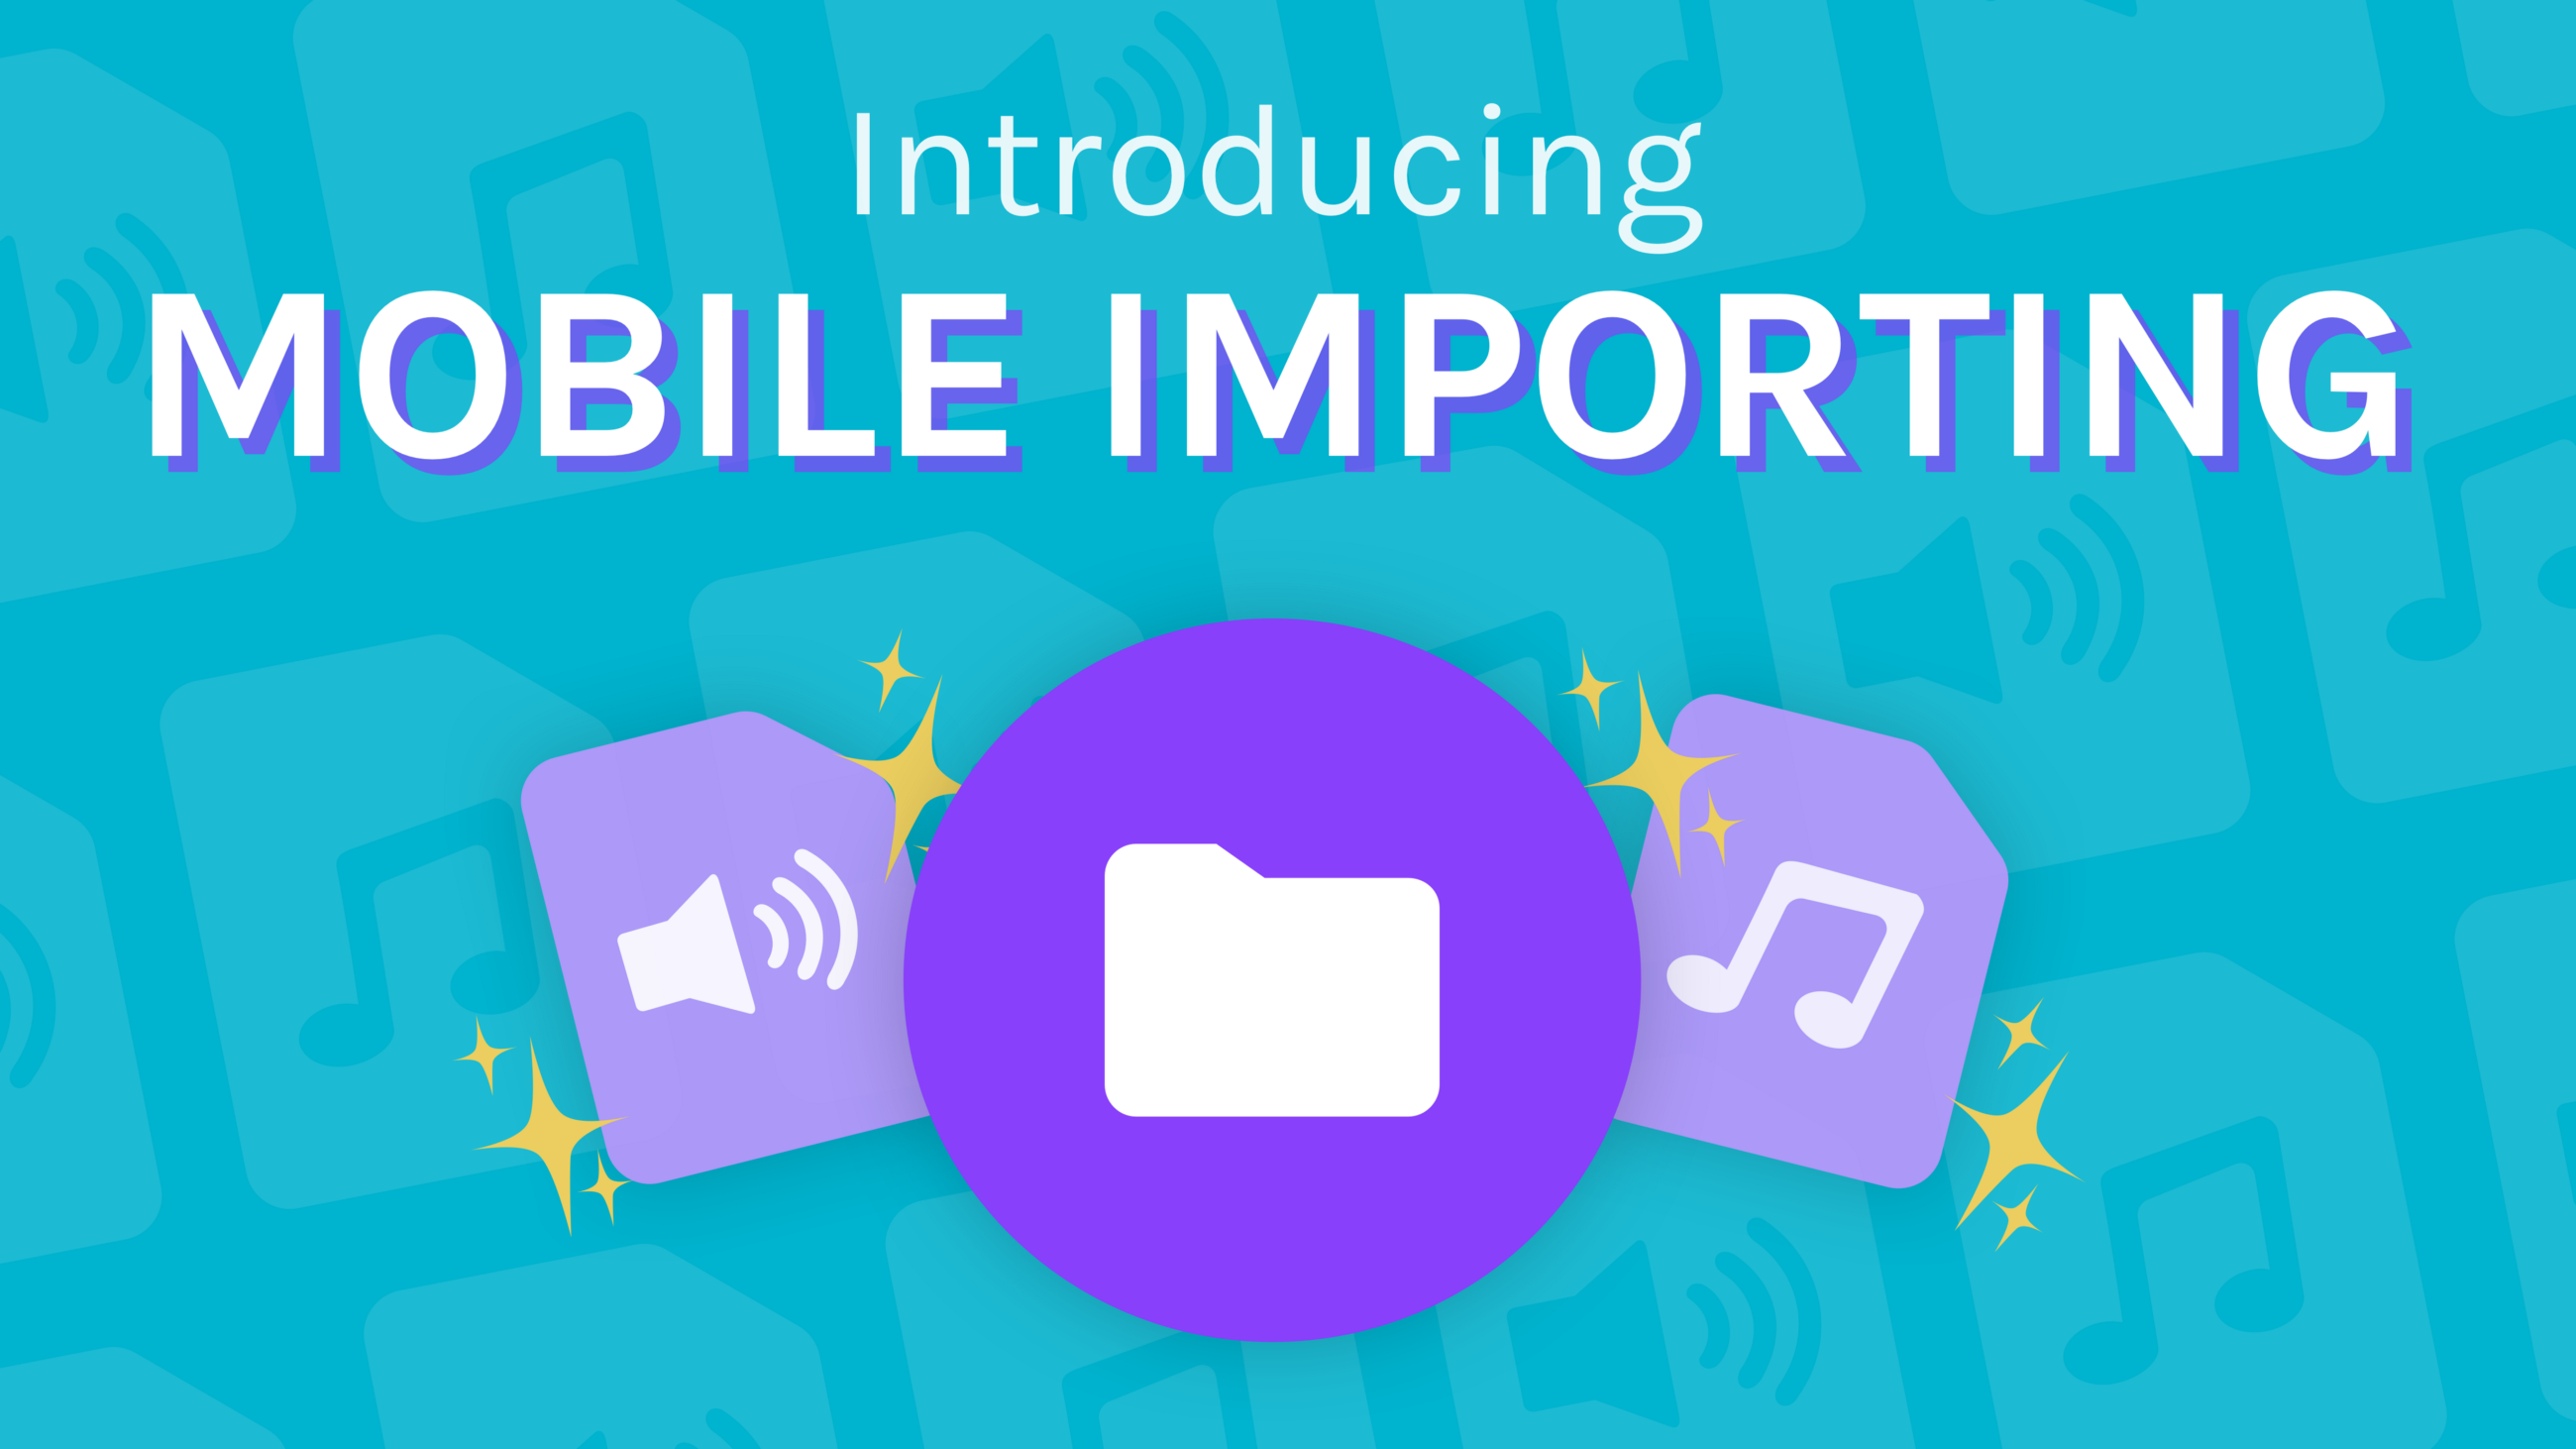 Introducing Mobile Importing: a new way to build your podcast with Anchor